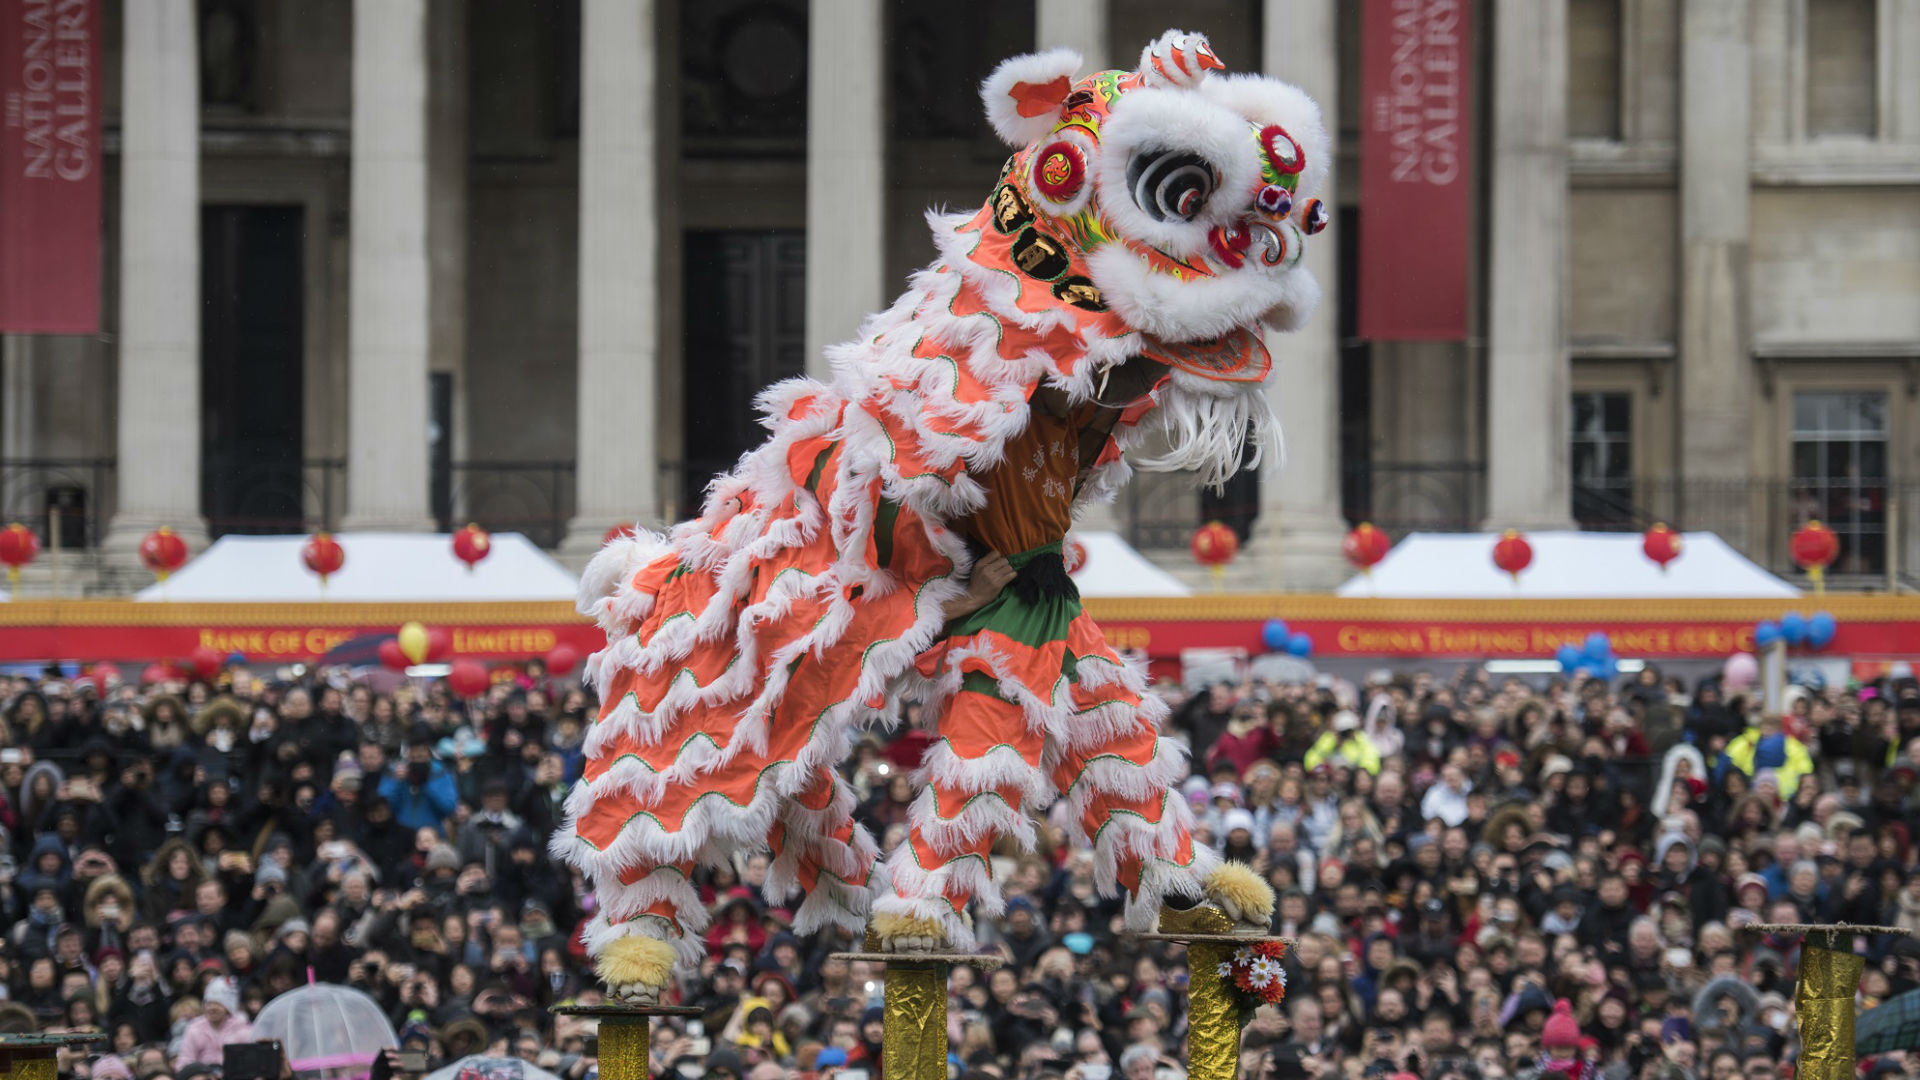 A lion dance takes place among the crowds during Chinese New Year in Trafalgar Square 2017. © Greater London Authority